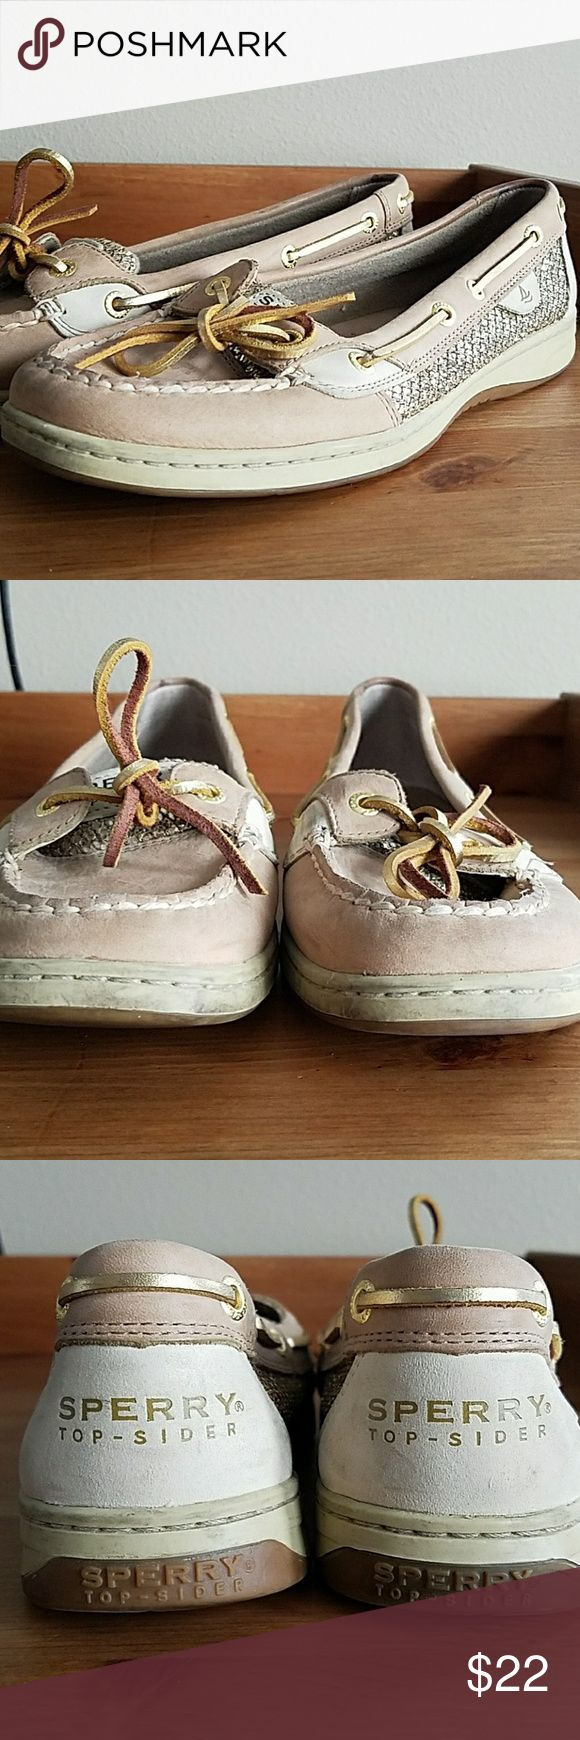 Gilded Sperry Top-Siders Used Sperry top-sider boat shoes in linen and gold, size 8 1/2. Price reflects condition... they're definitely used but could probably be cleaned up. Sperry Shoes Sneakers